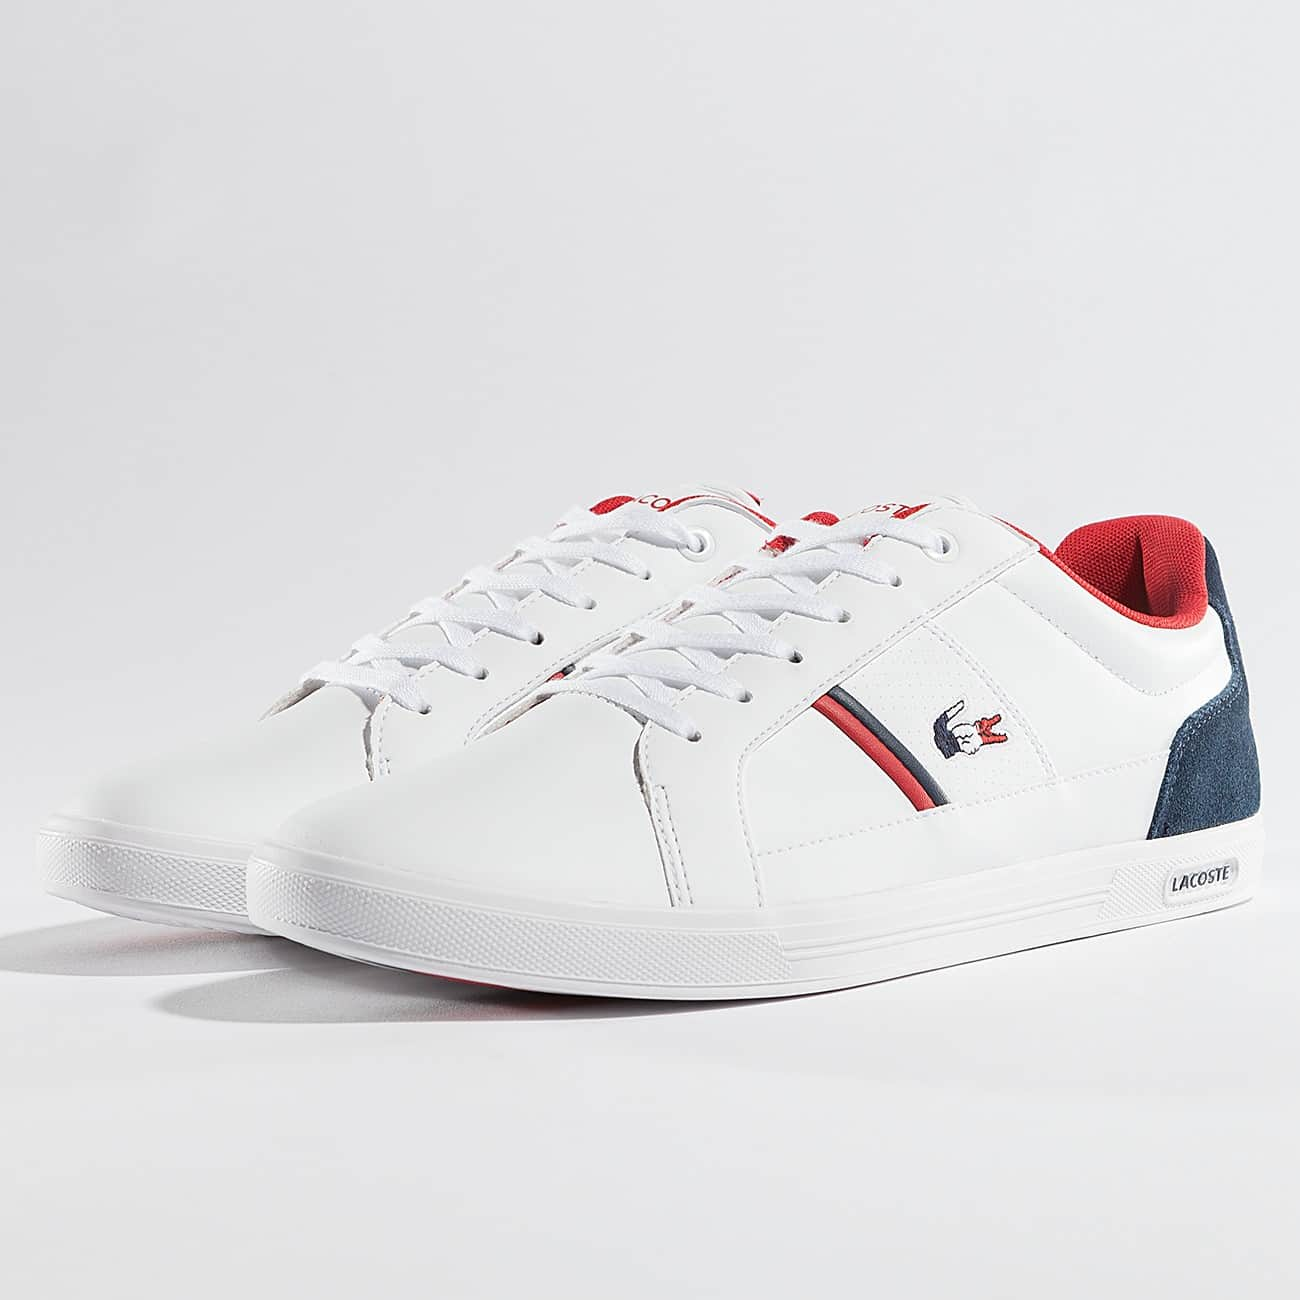 Chaussure Lacoste Blanc Rouge Blanc Lacoste Lacoste Rouge Blanc Chaussure Chaussure 80OnkPw